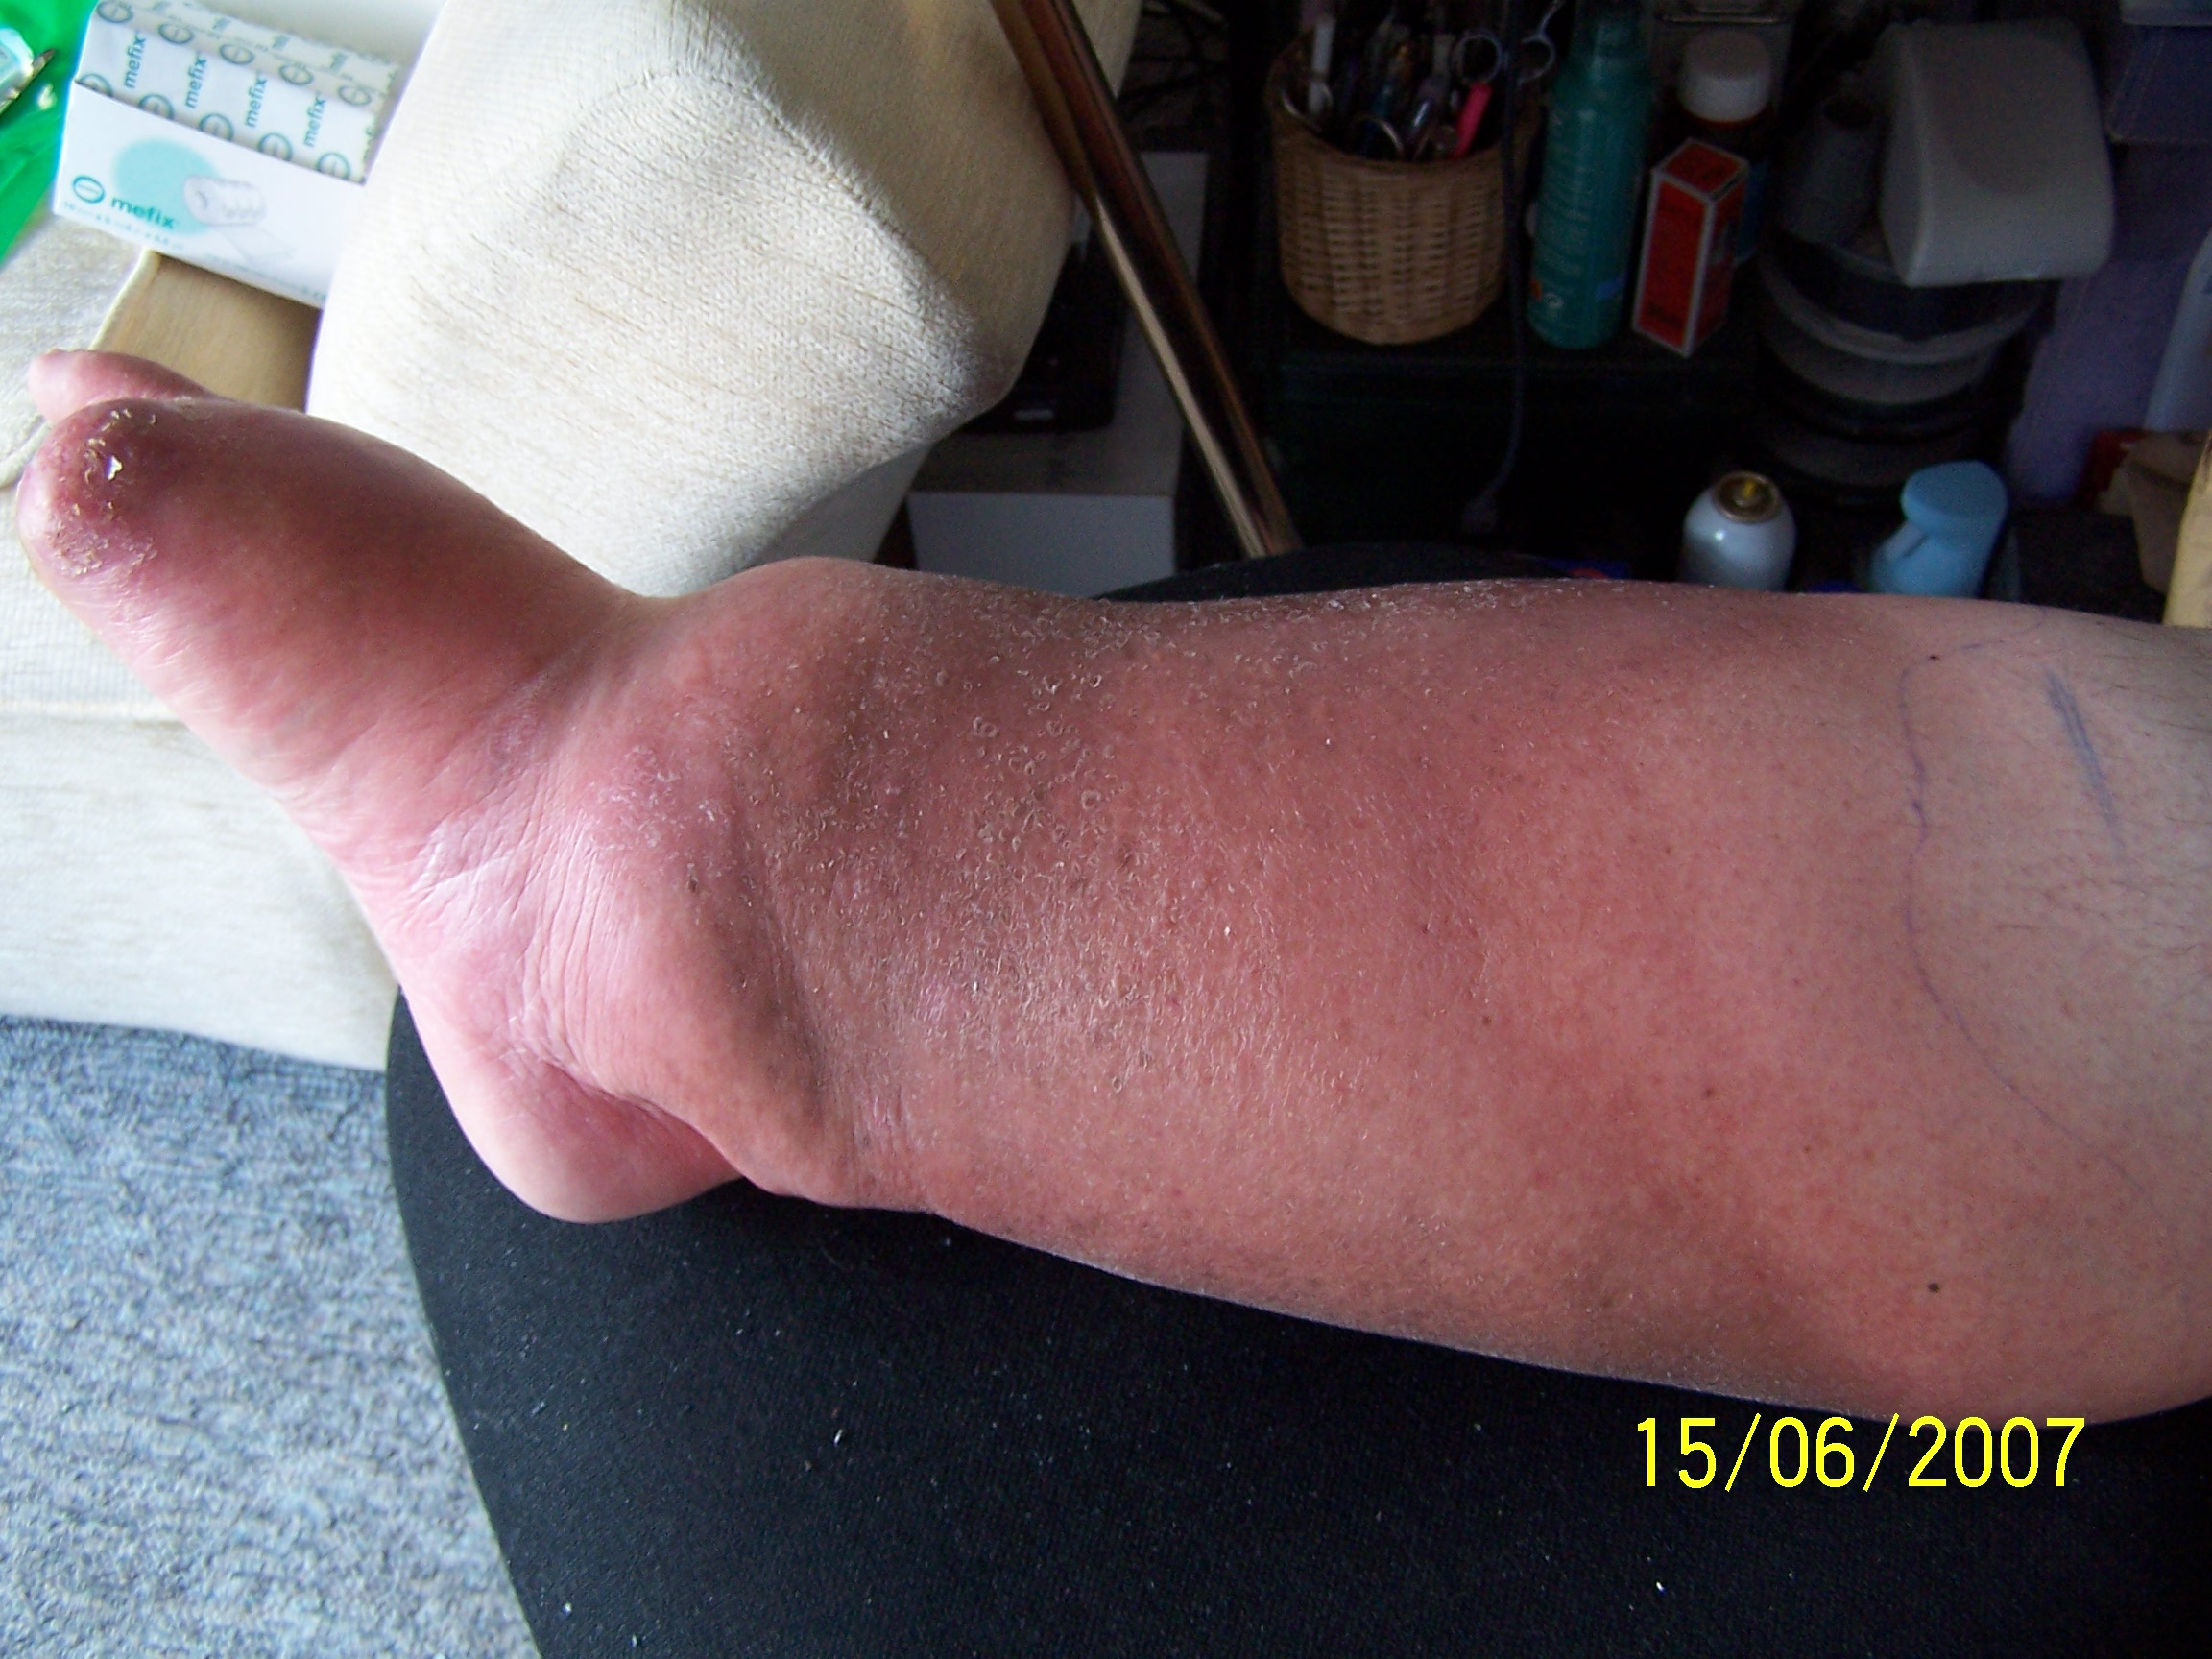 File:My leg with cellulitis and oedema jpg - Wikimedia Commons